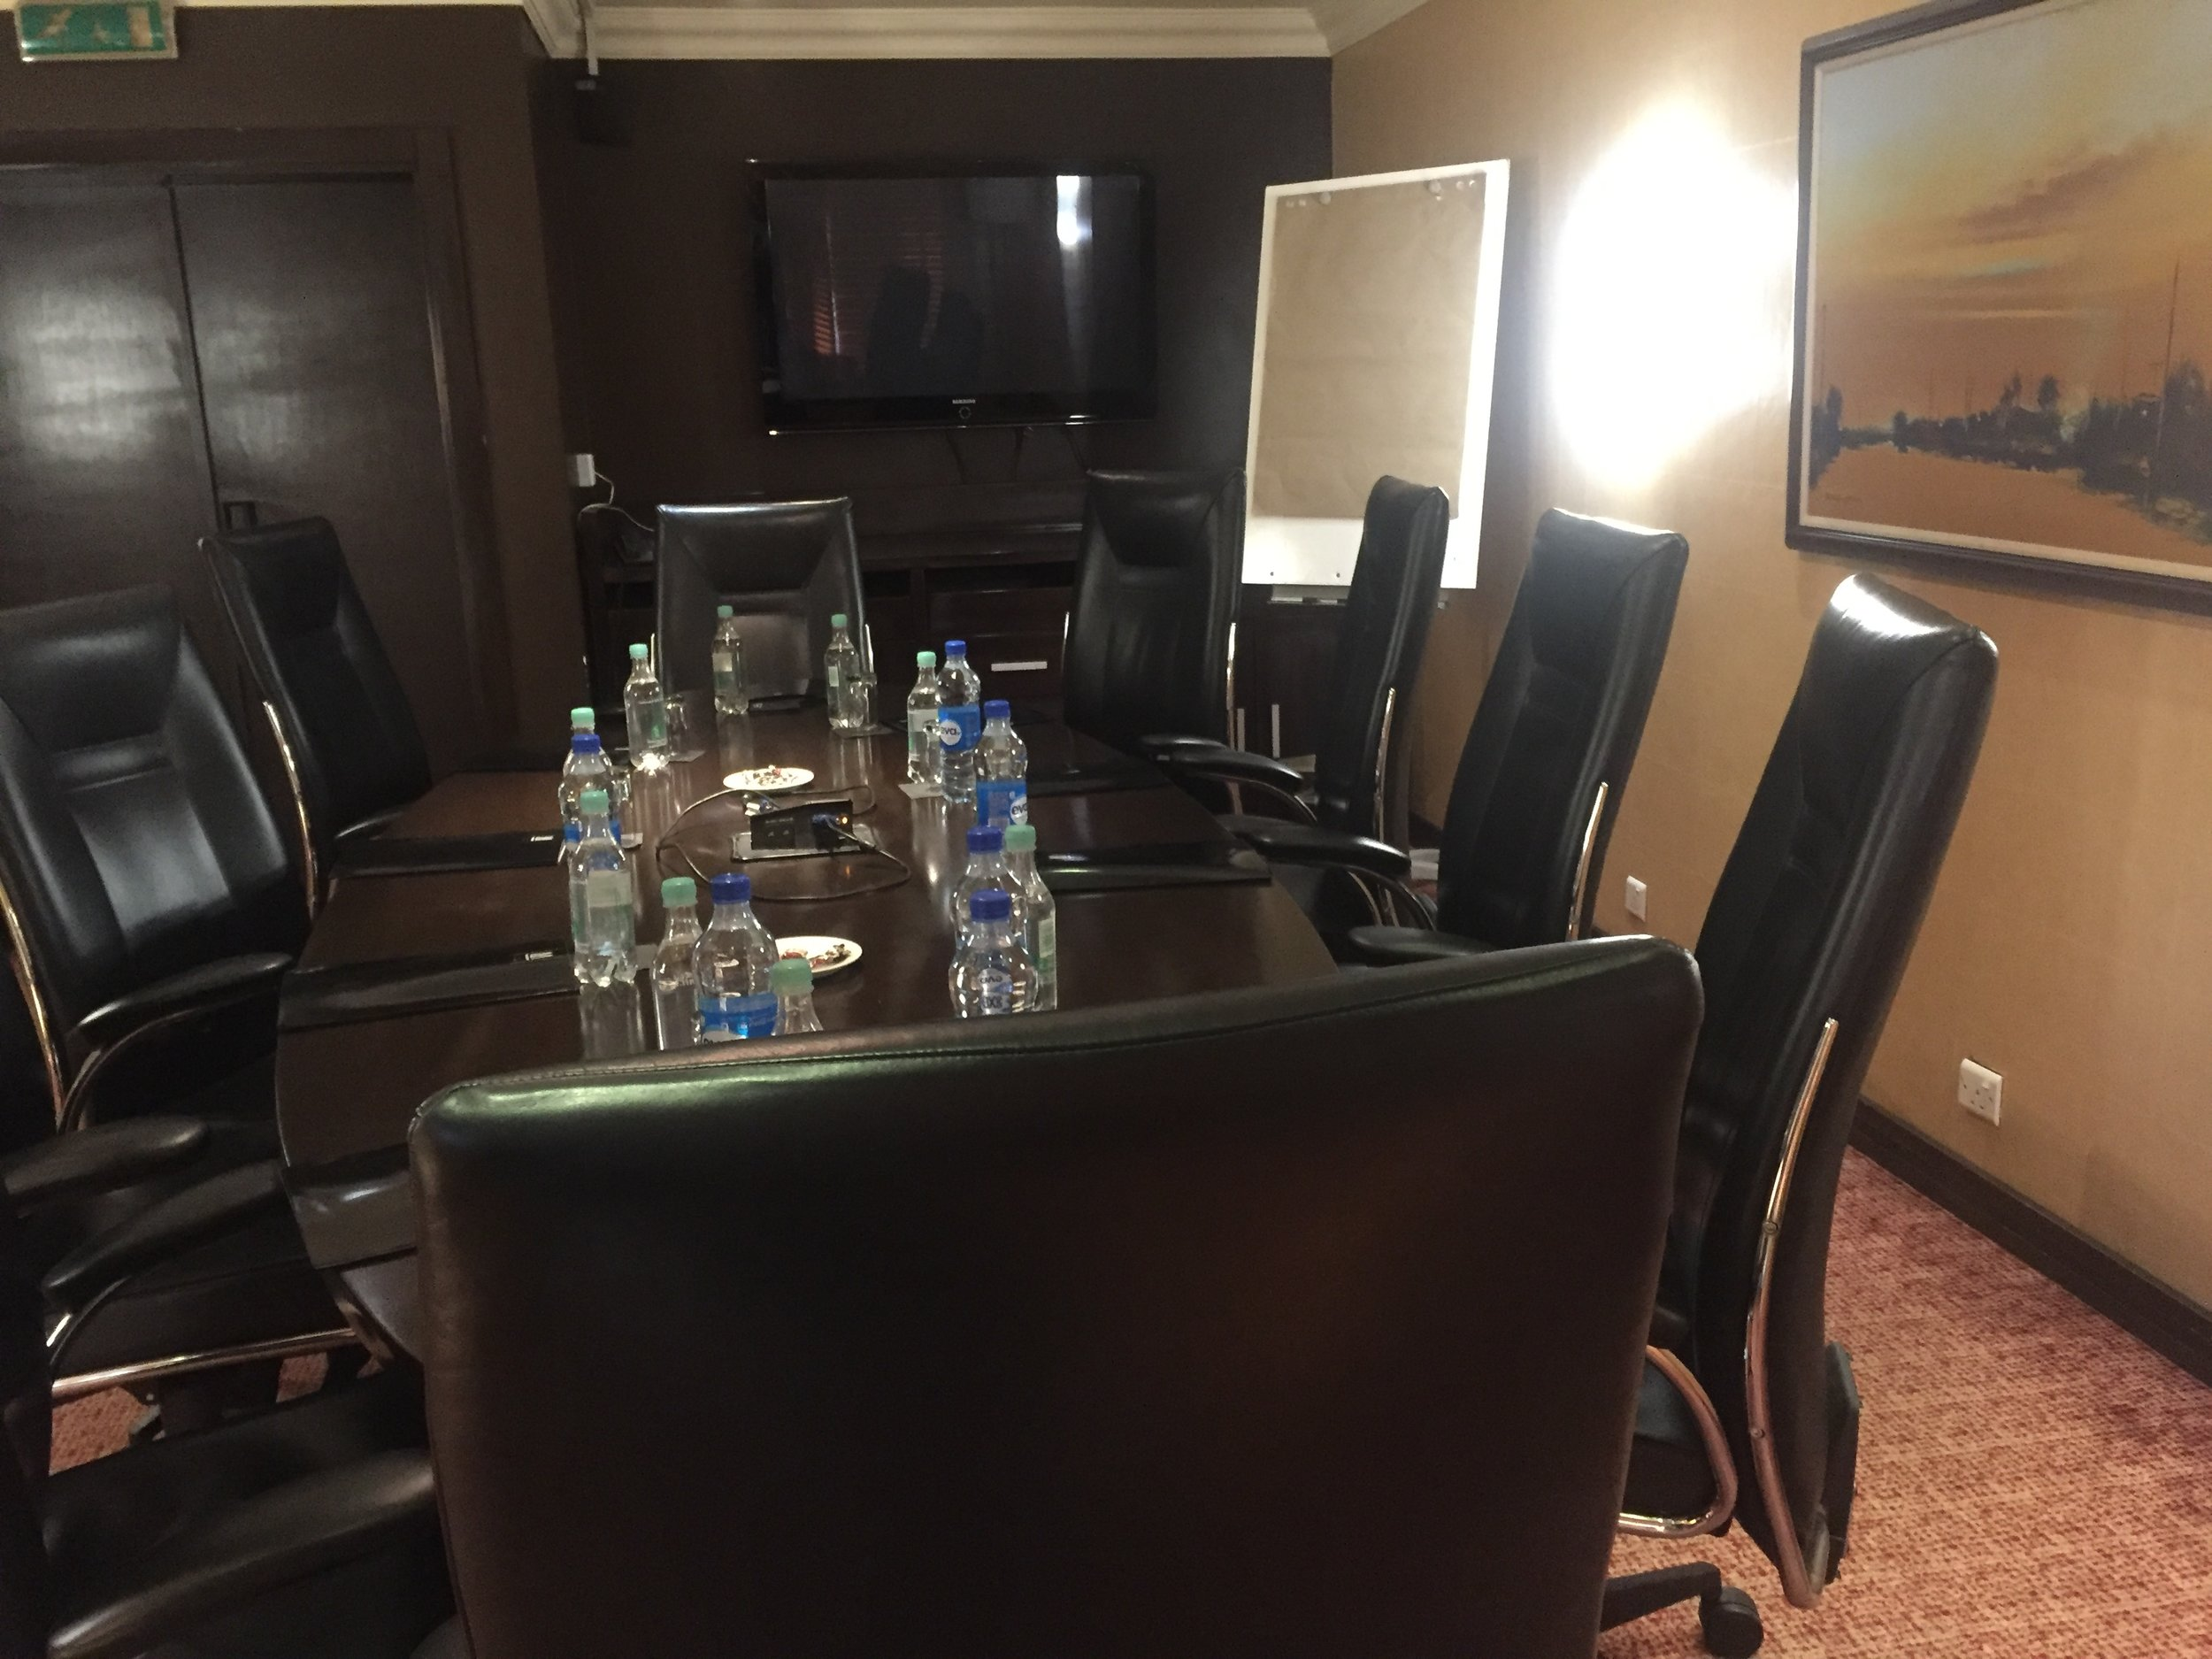 The board room with a 10-man sitting capacity